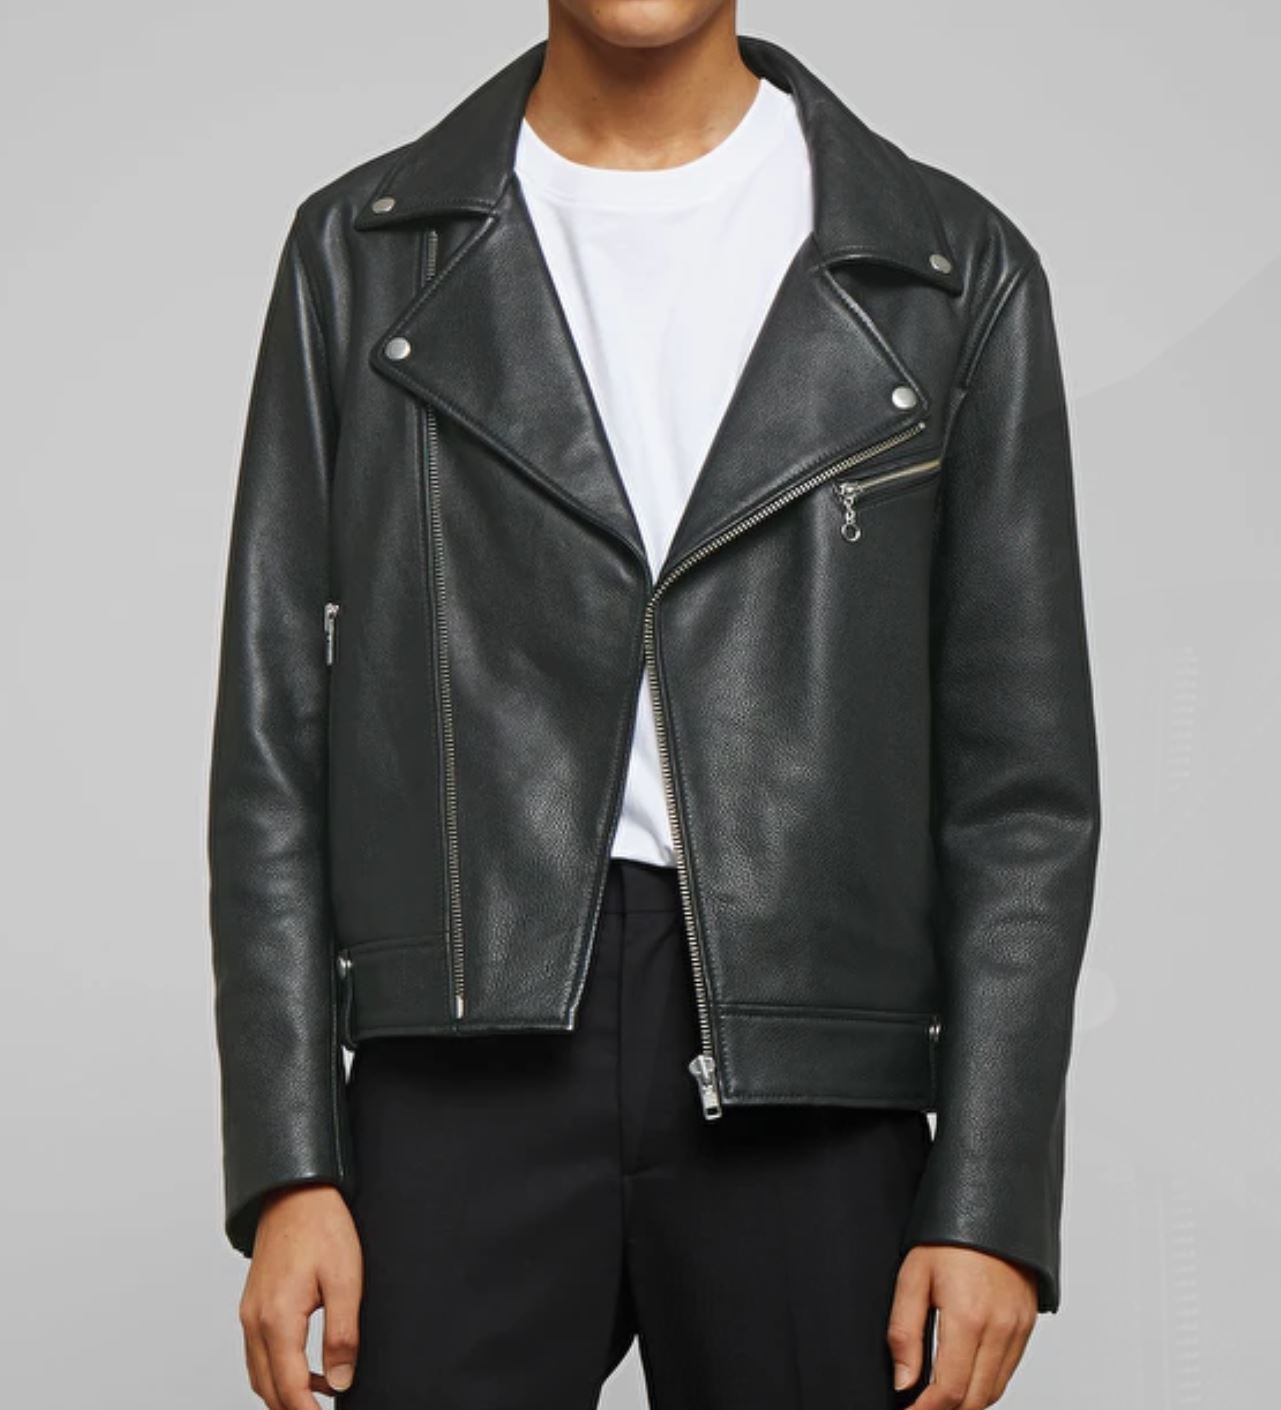 Plain Black Leather Jacket from weekday.com